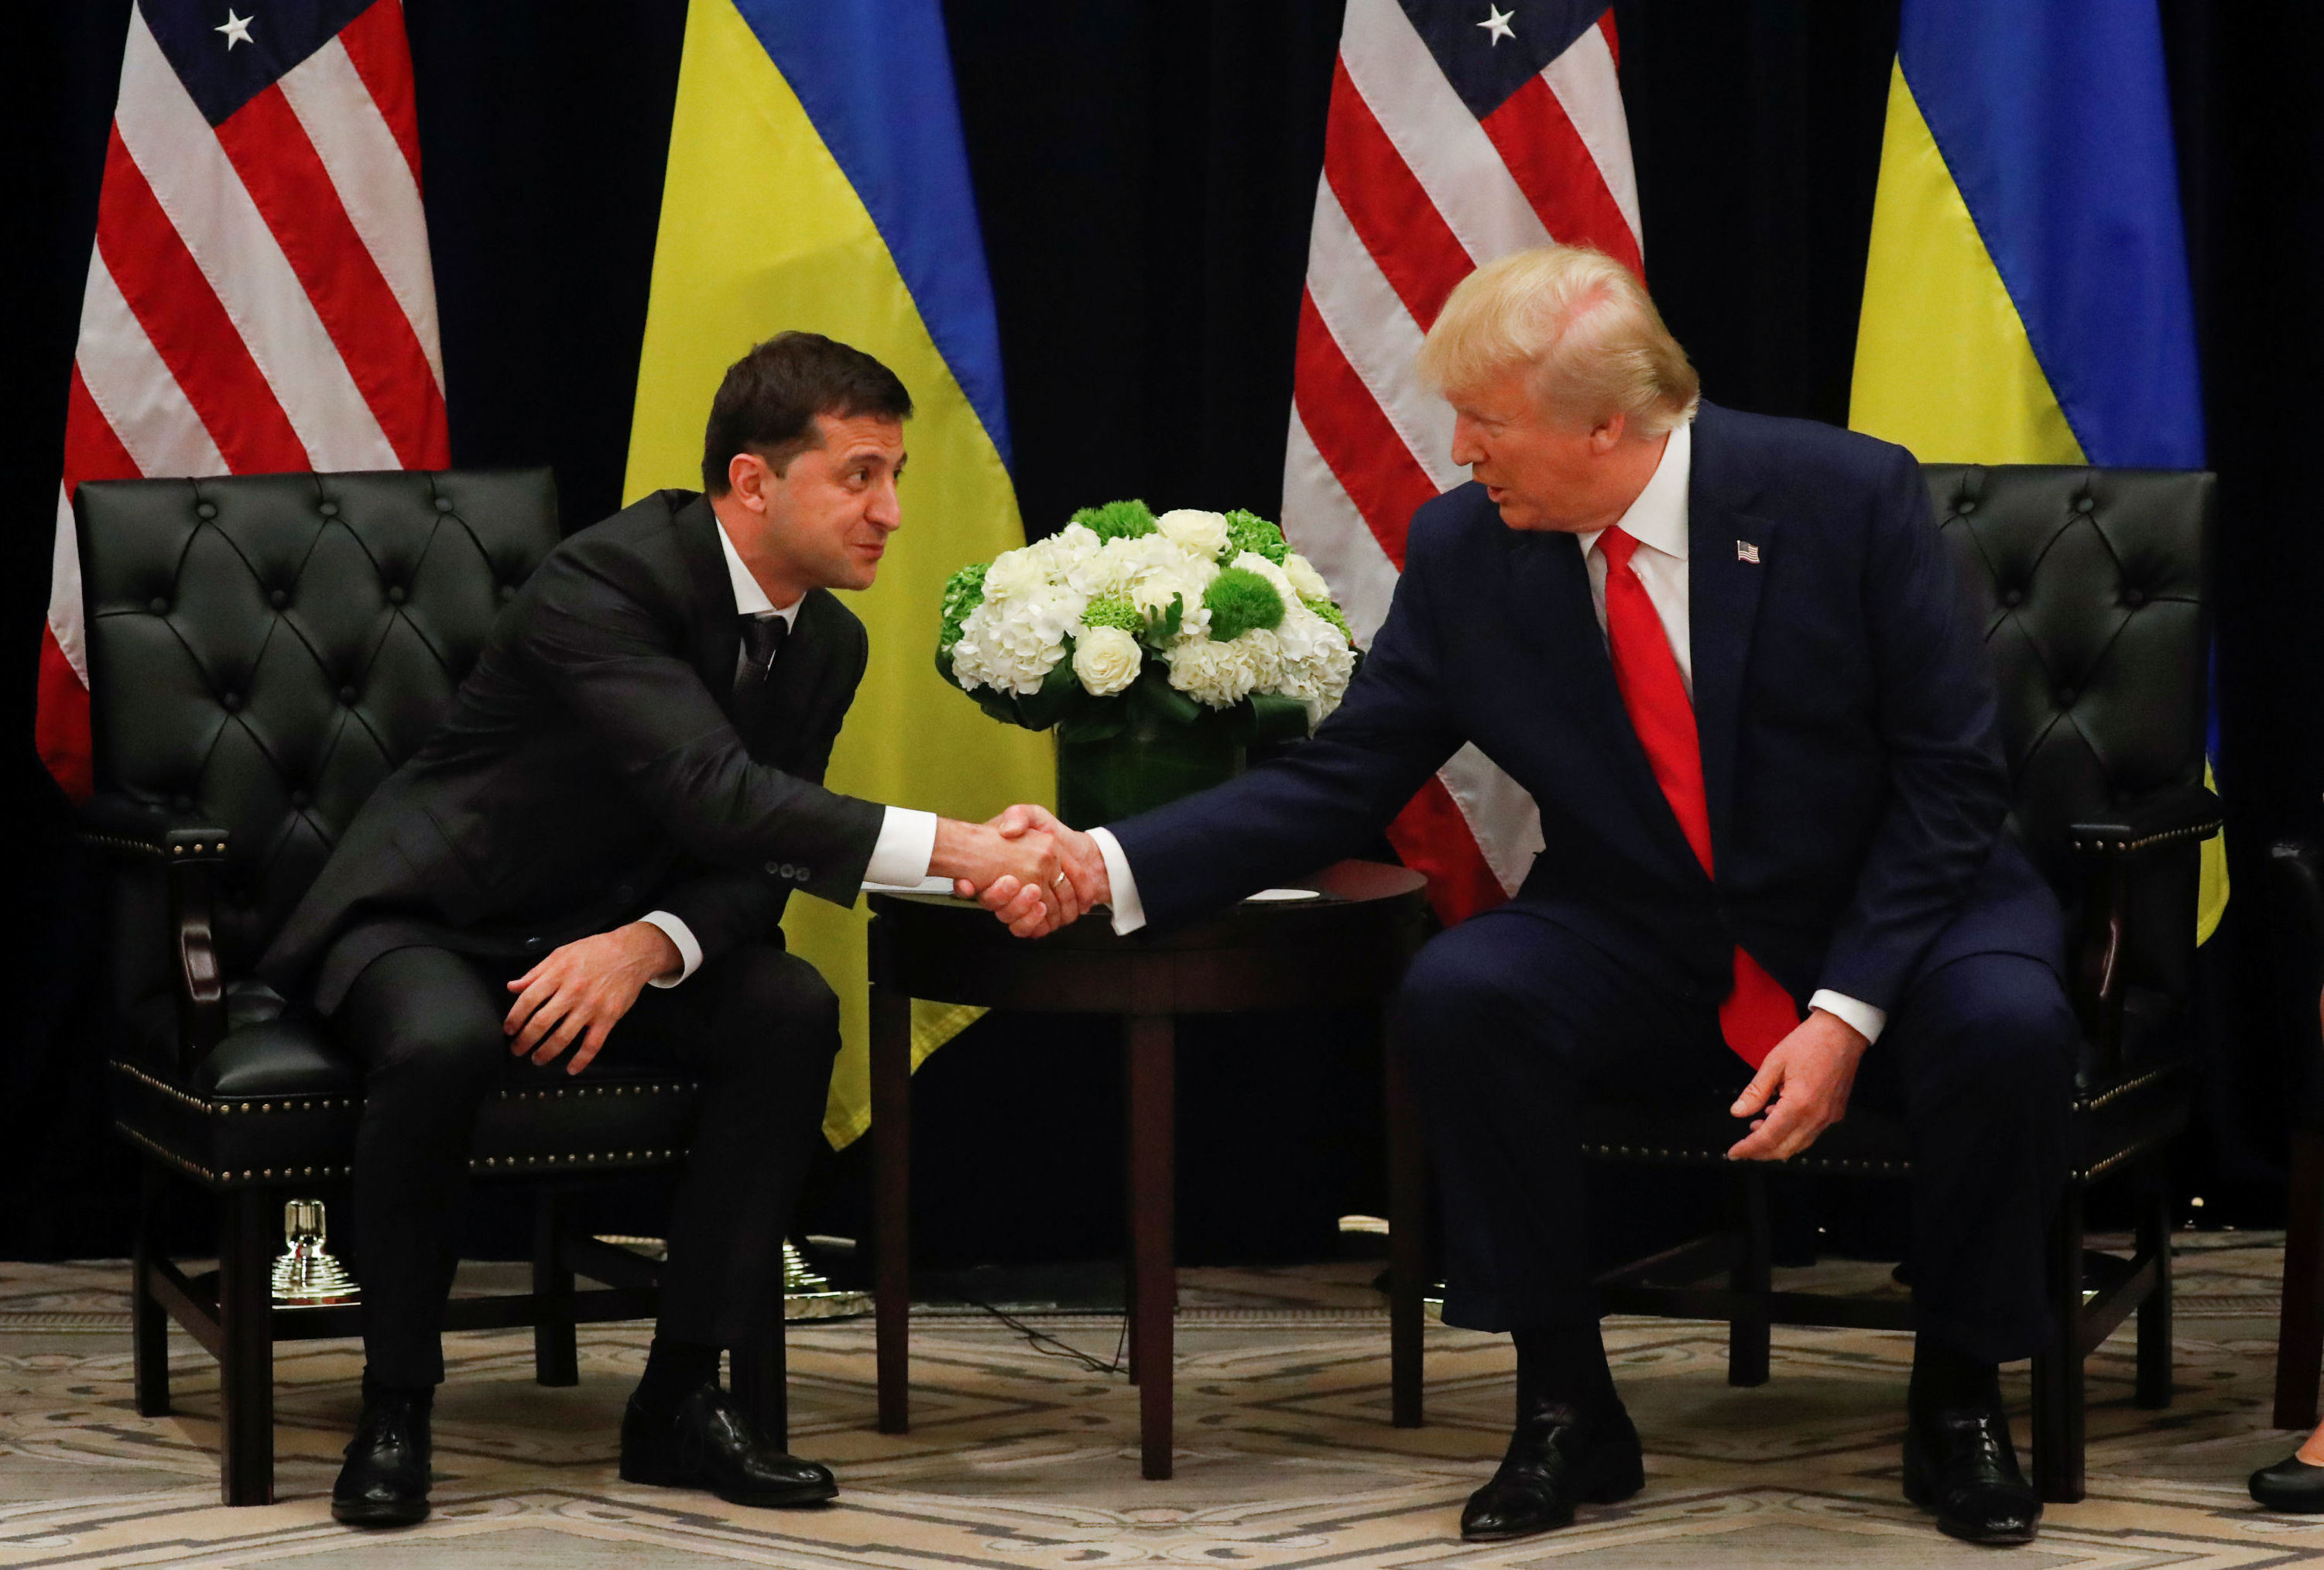 U.S. President Donald Trump shakes hands with Ukraine's President Volodymyr Zelensky during a bilateral meeting on the sidelines of the 74th session of the United Nations General Assembly (UNGA) in New York City, New York, U.S., September 25, 2019